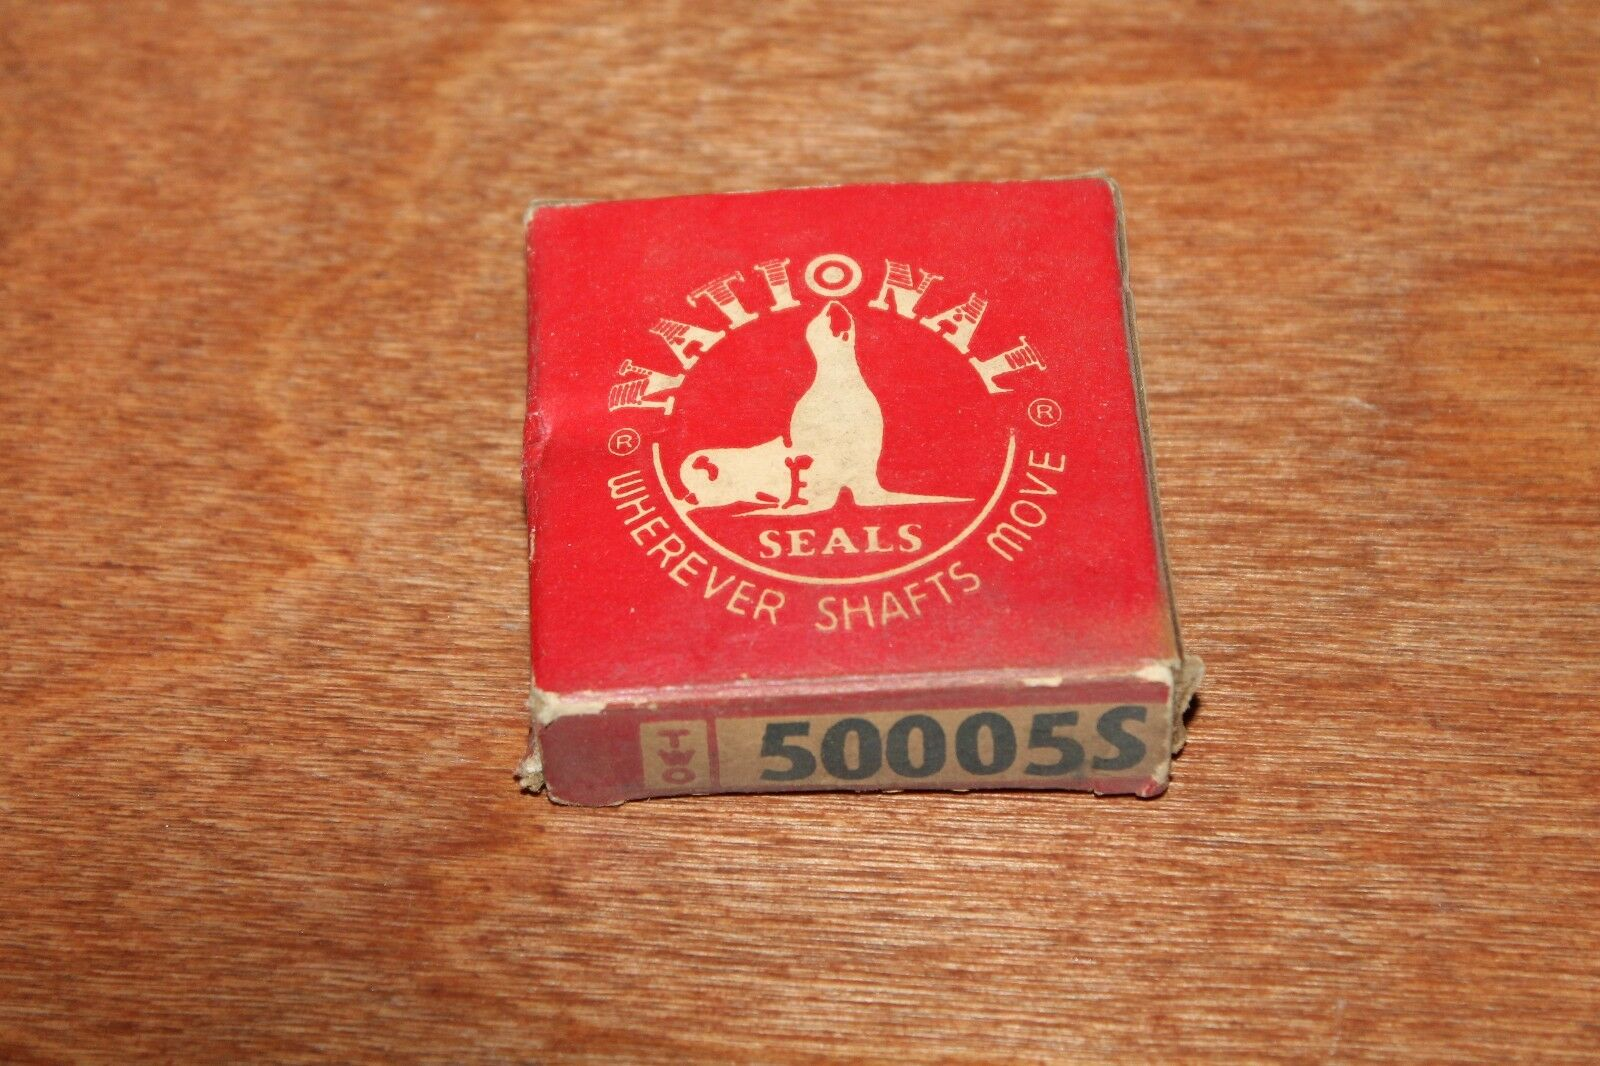 6 National Oil Seals 50005-S